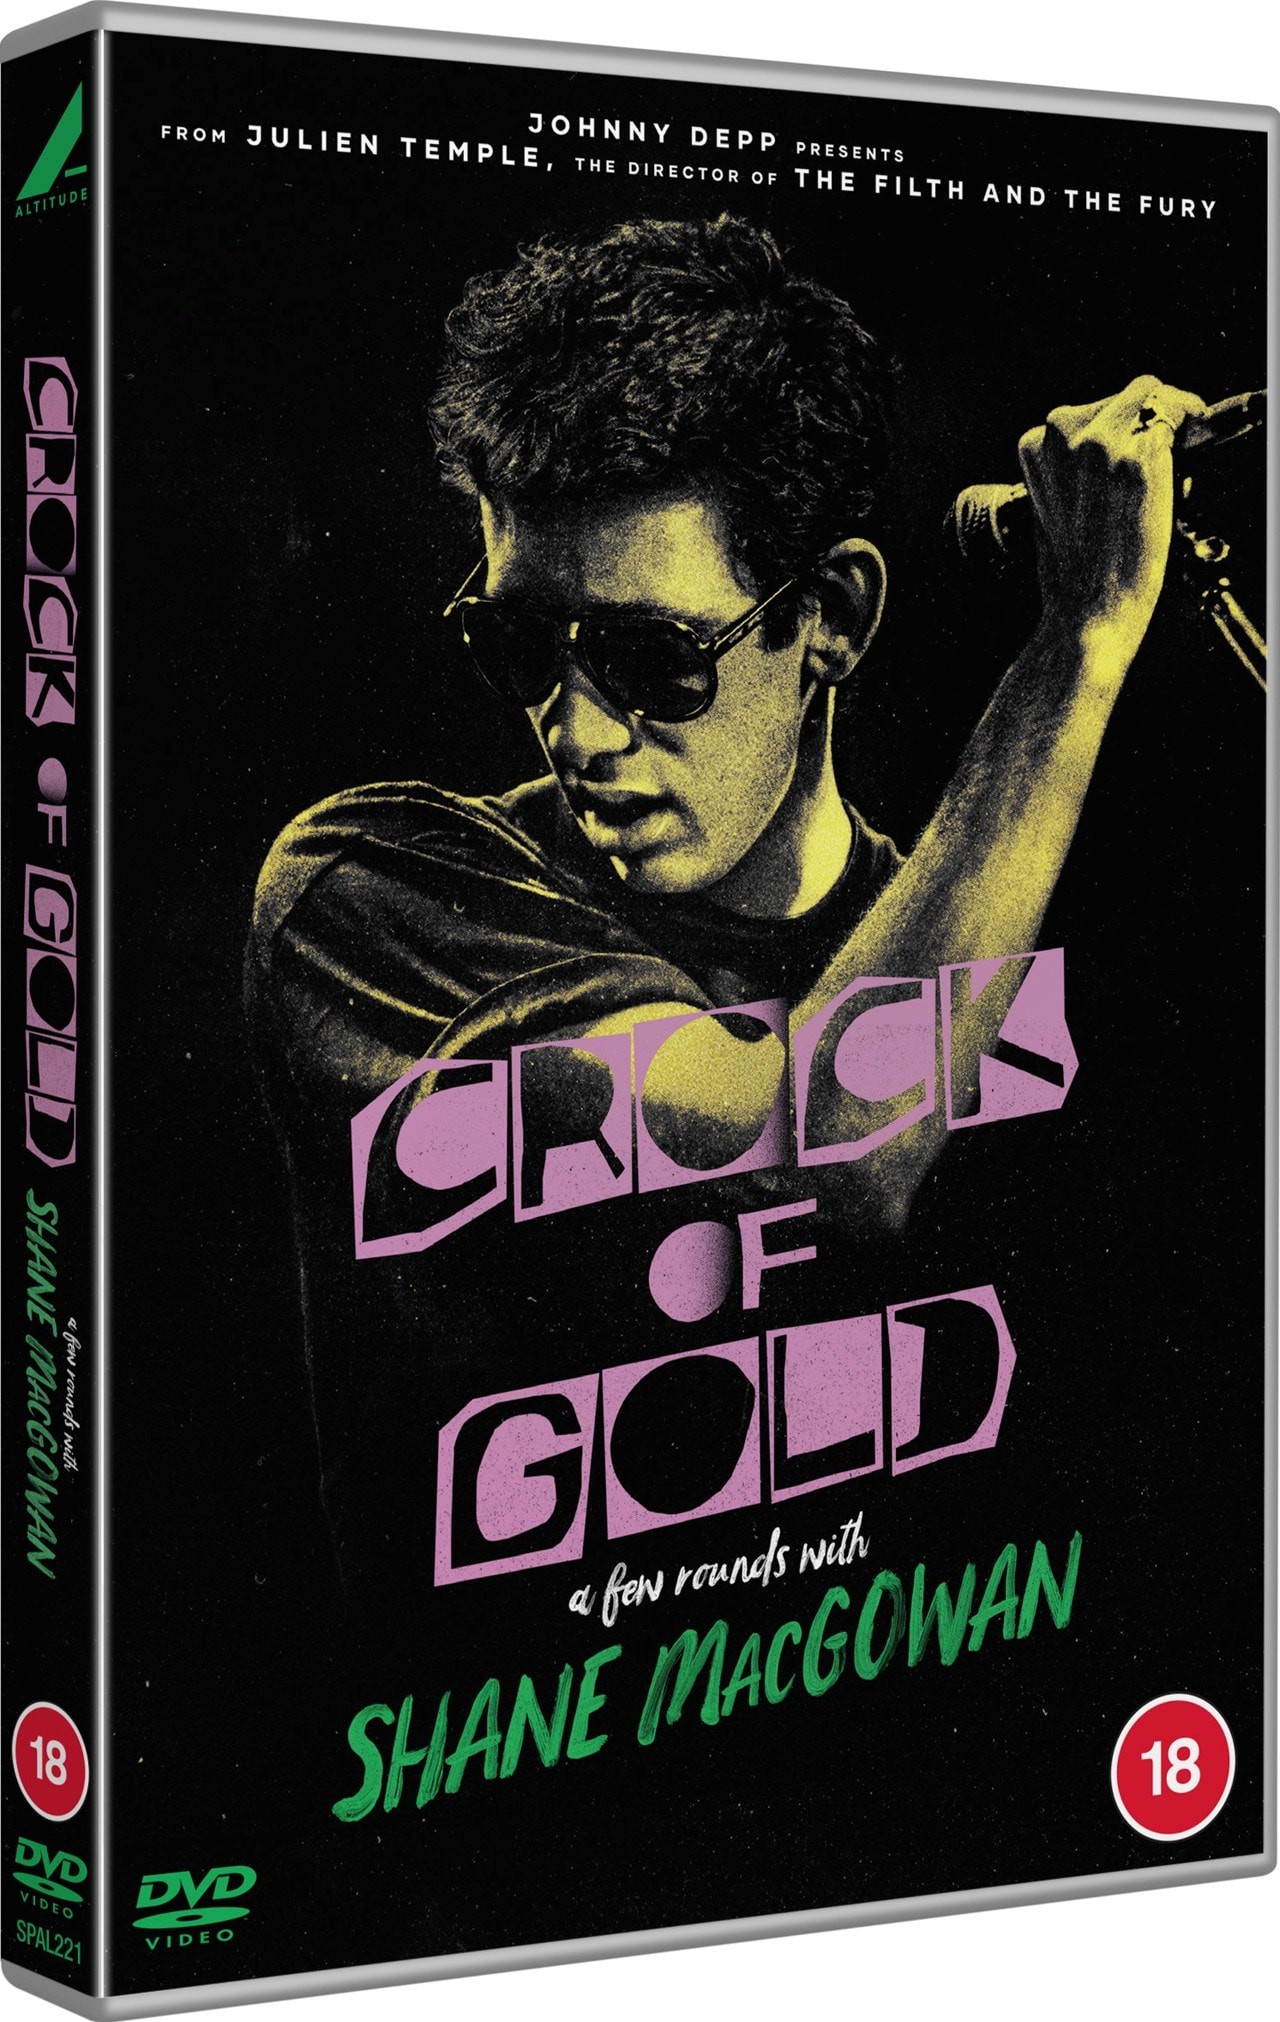 Crock of Gold - A Few Rounds With Shane MacGowan - 2